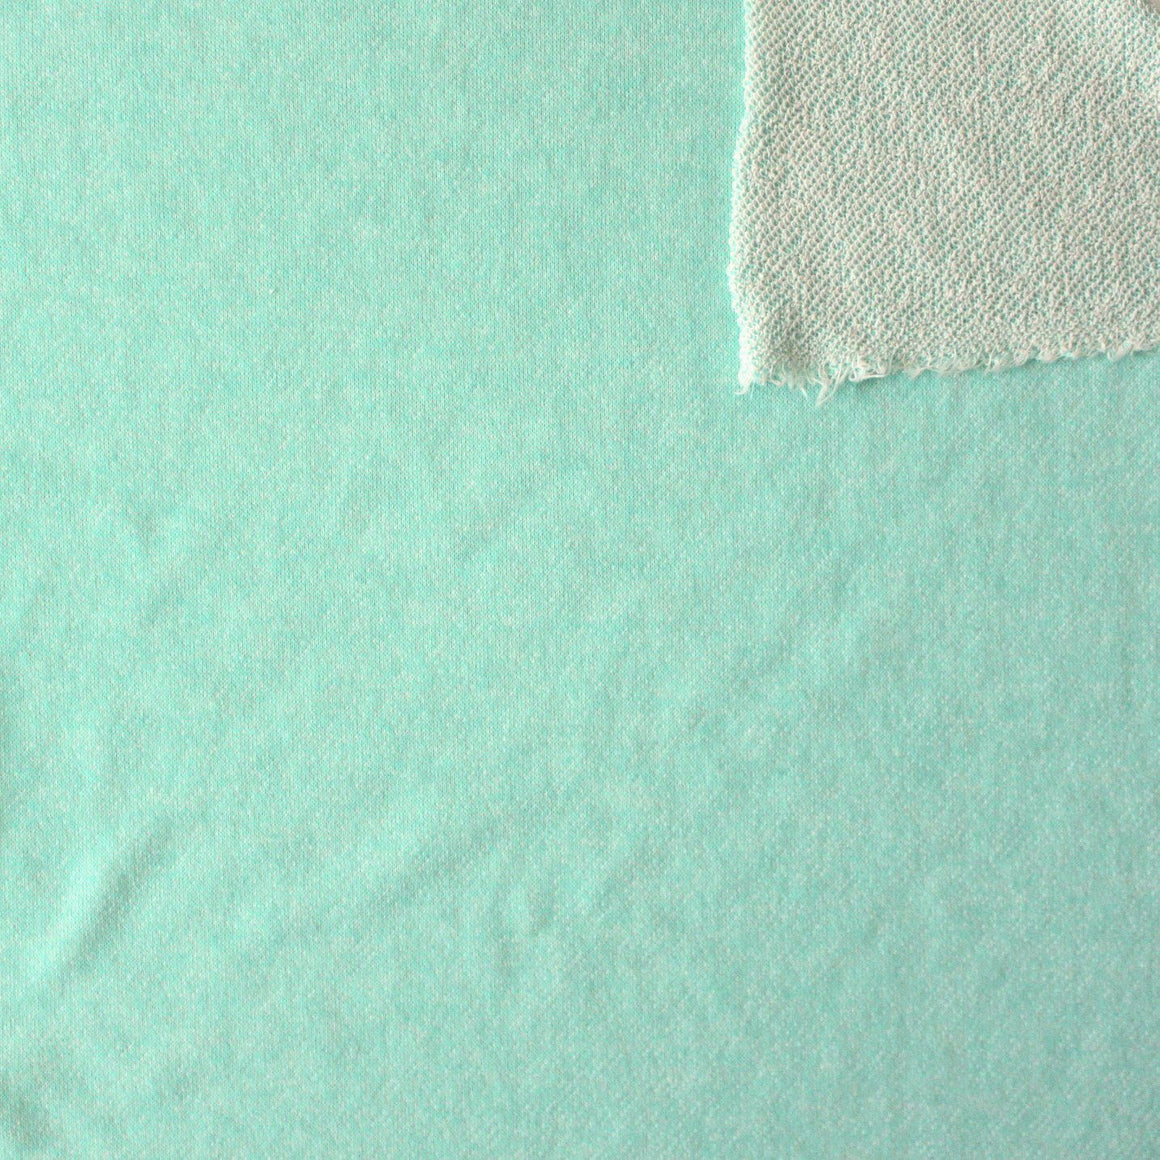 Mint Green Heathered French Terry Knit Sweatshirt Fabric, 1 Yard